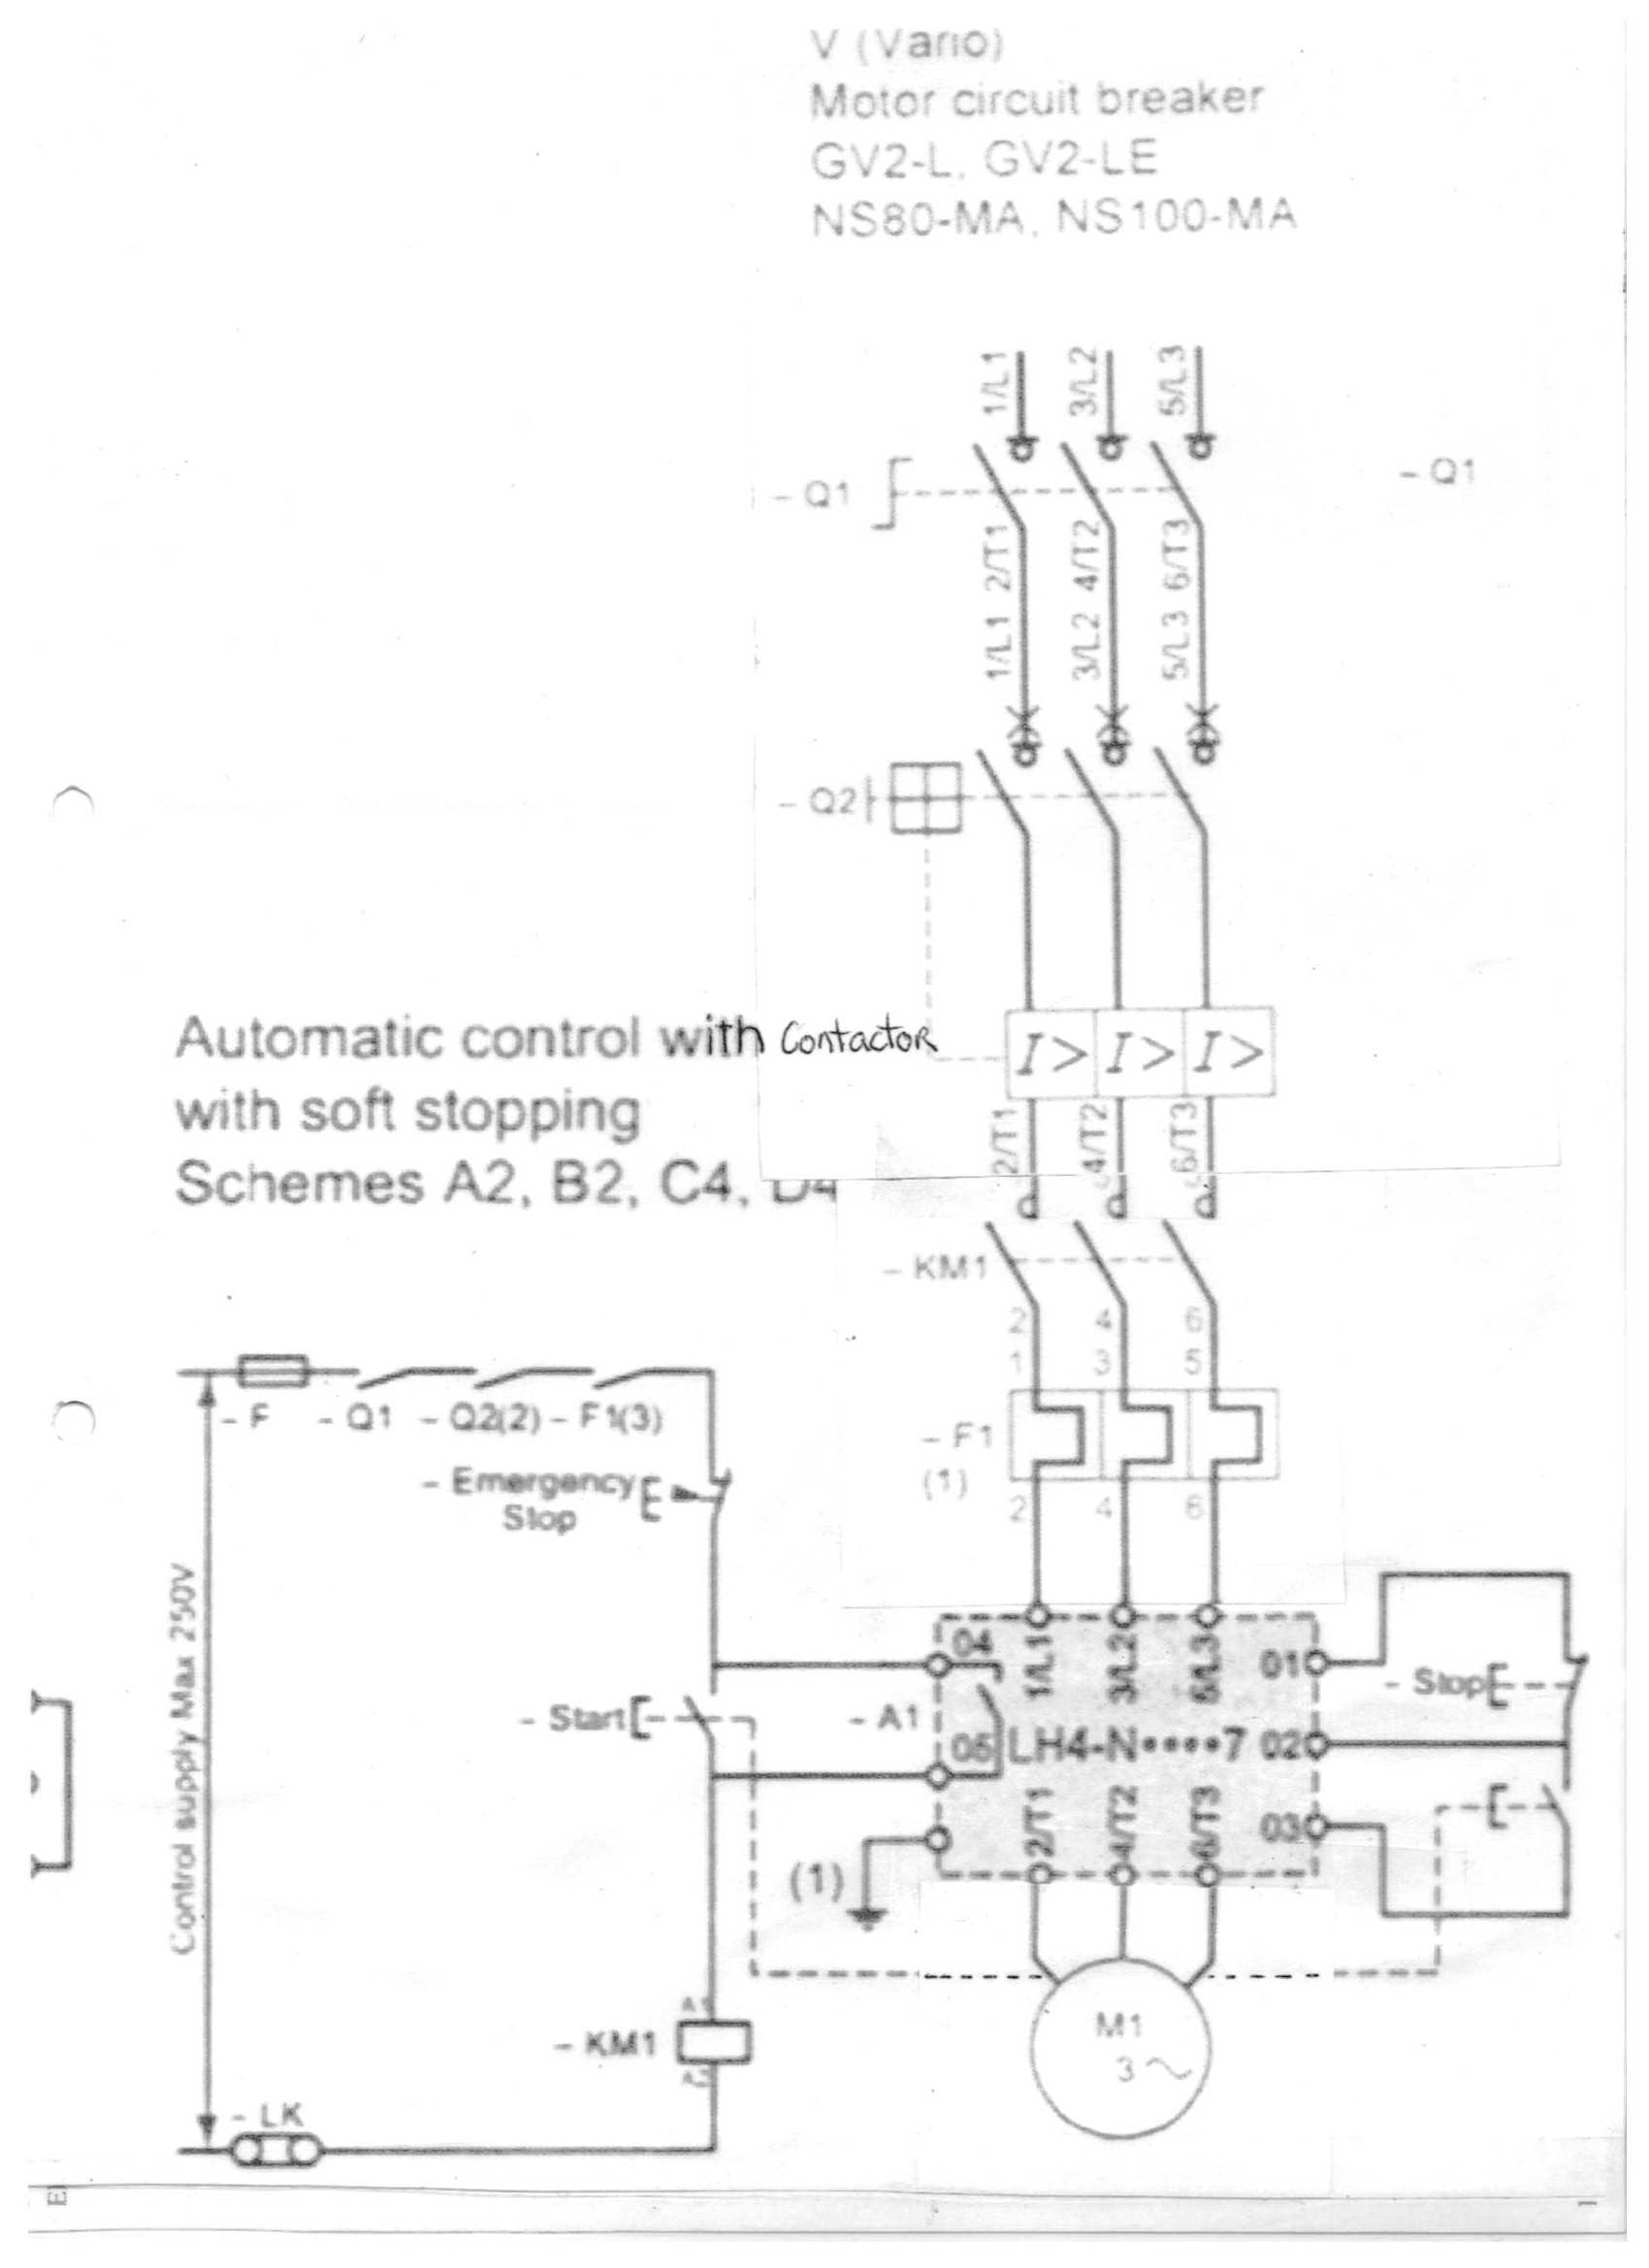 I Have An Electrical Drawing Of A Lh4n212qn7 Soft Start Soft Stop Id Like To Send To You To Have